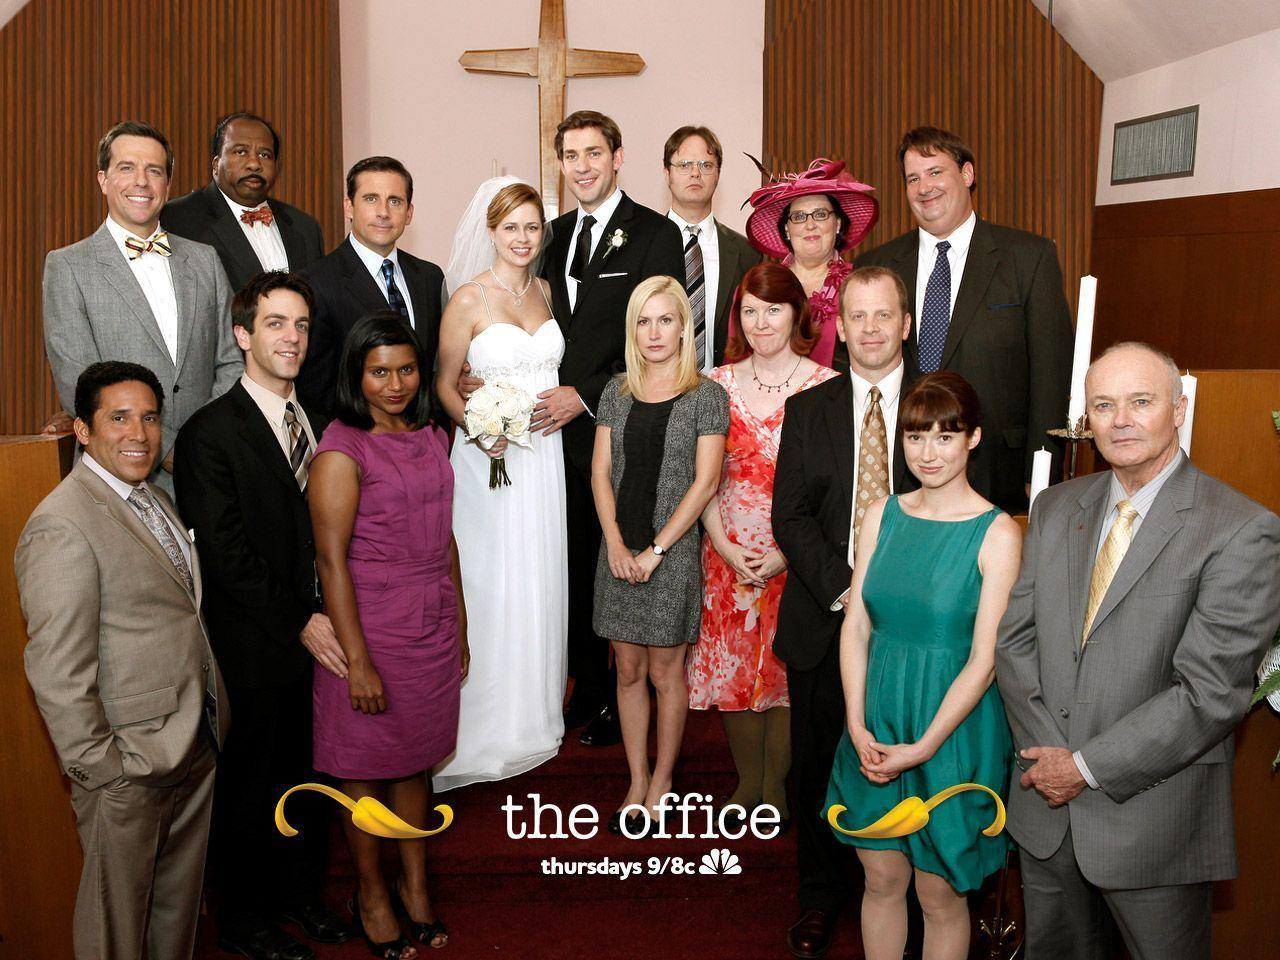 The Office Wallpapers | HD Wallpapers Base